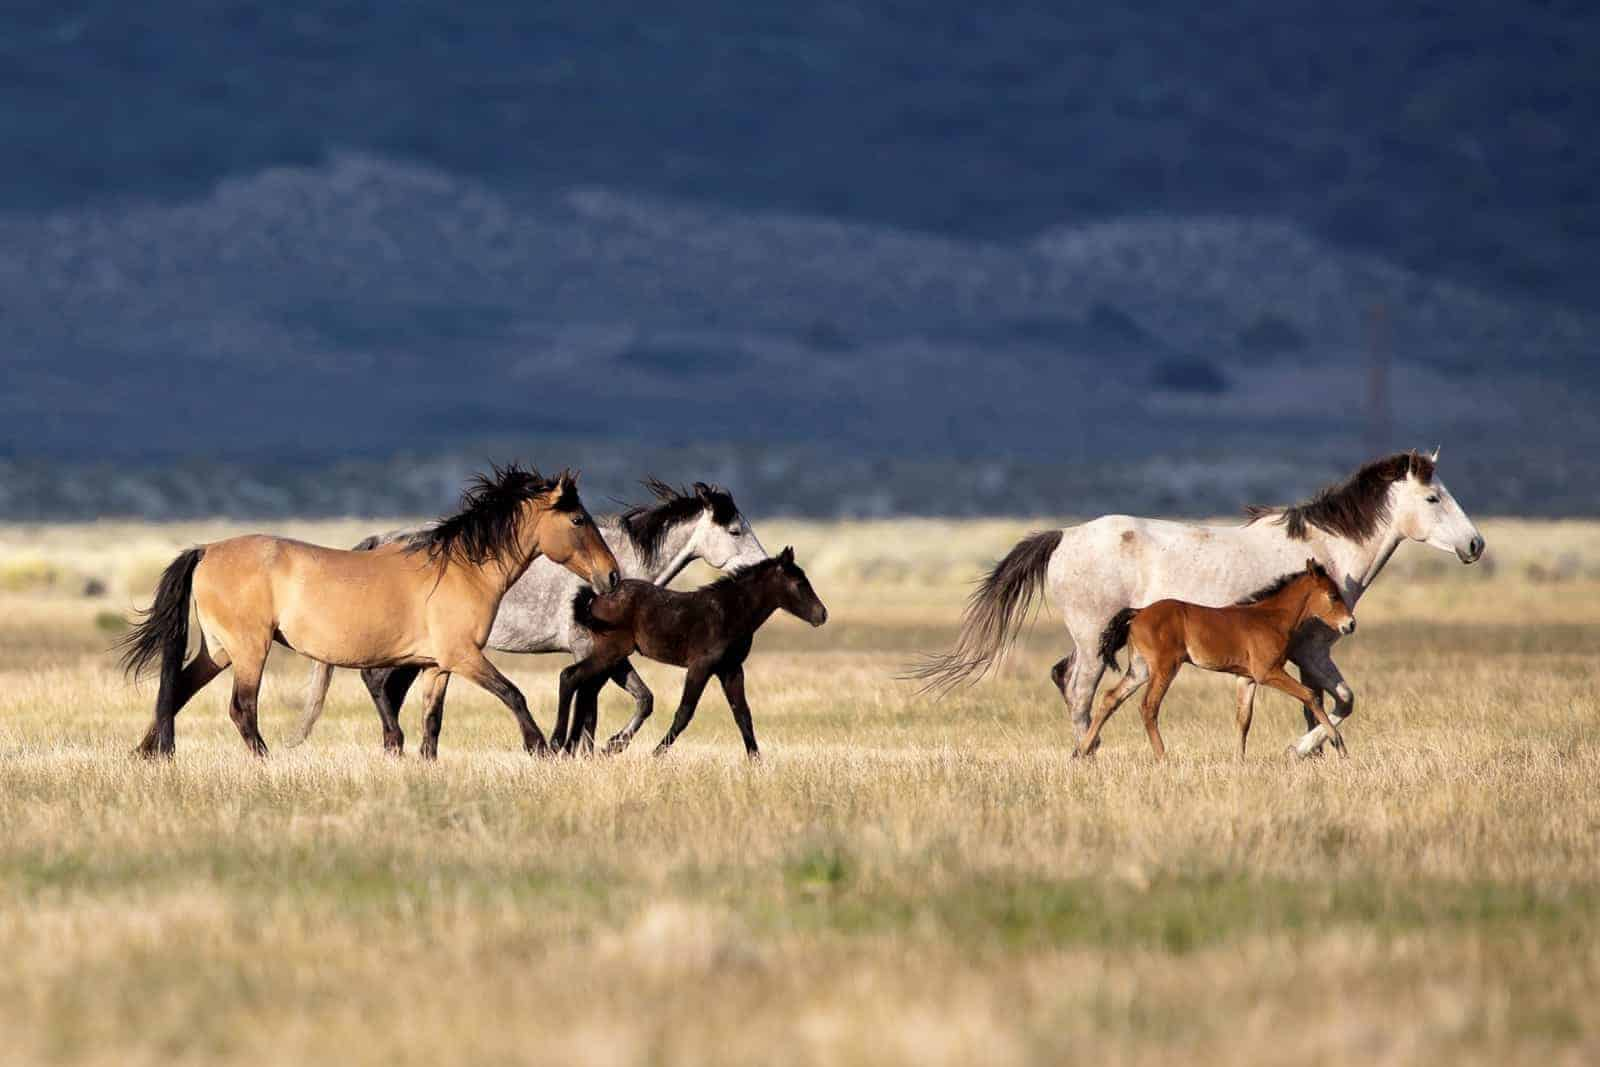 Horse Migration: Memory, Perception Play Important Roles – The Horse